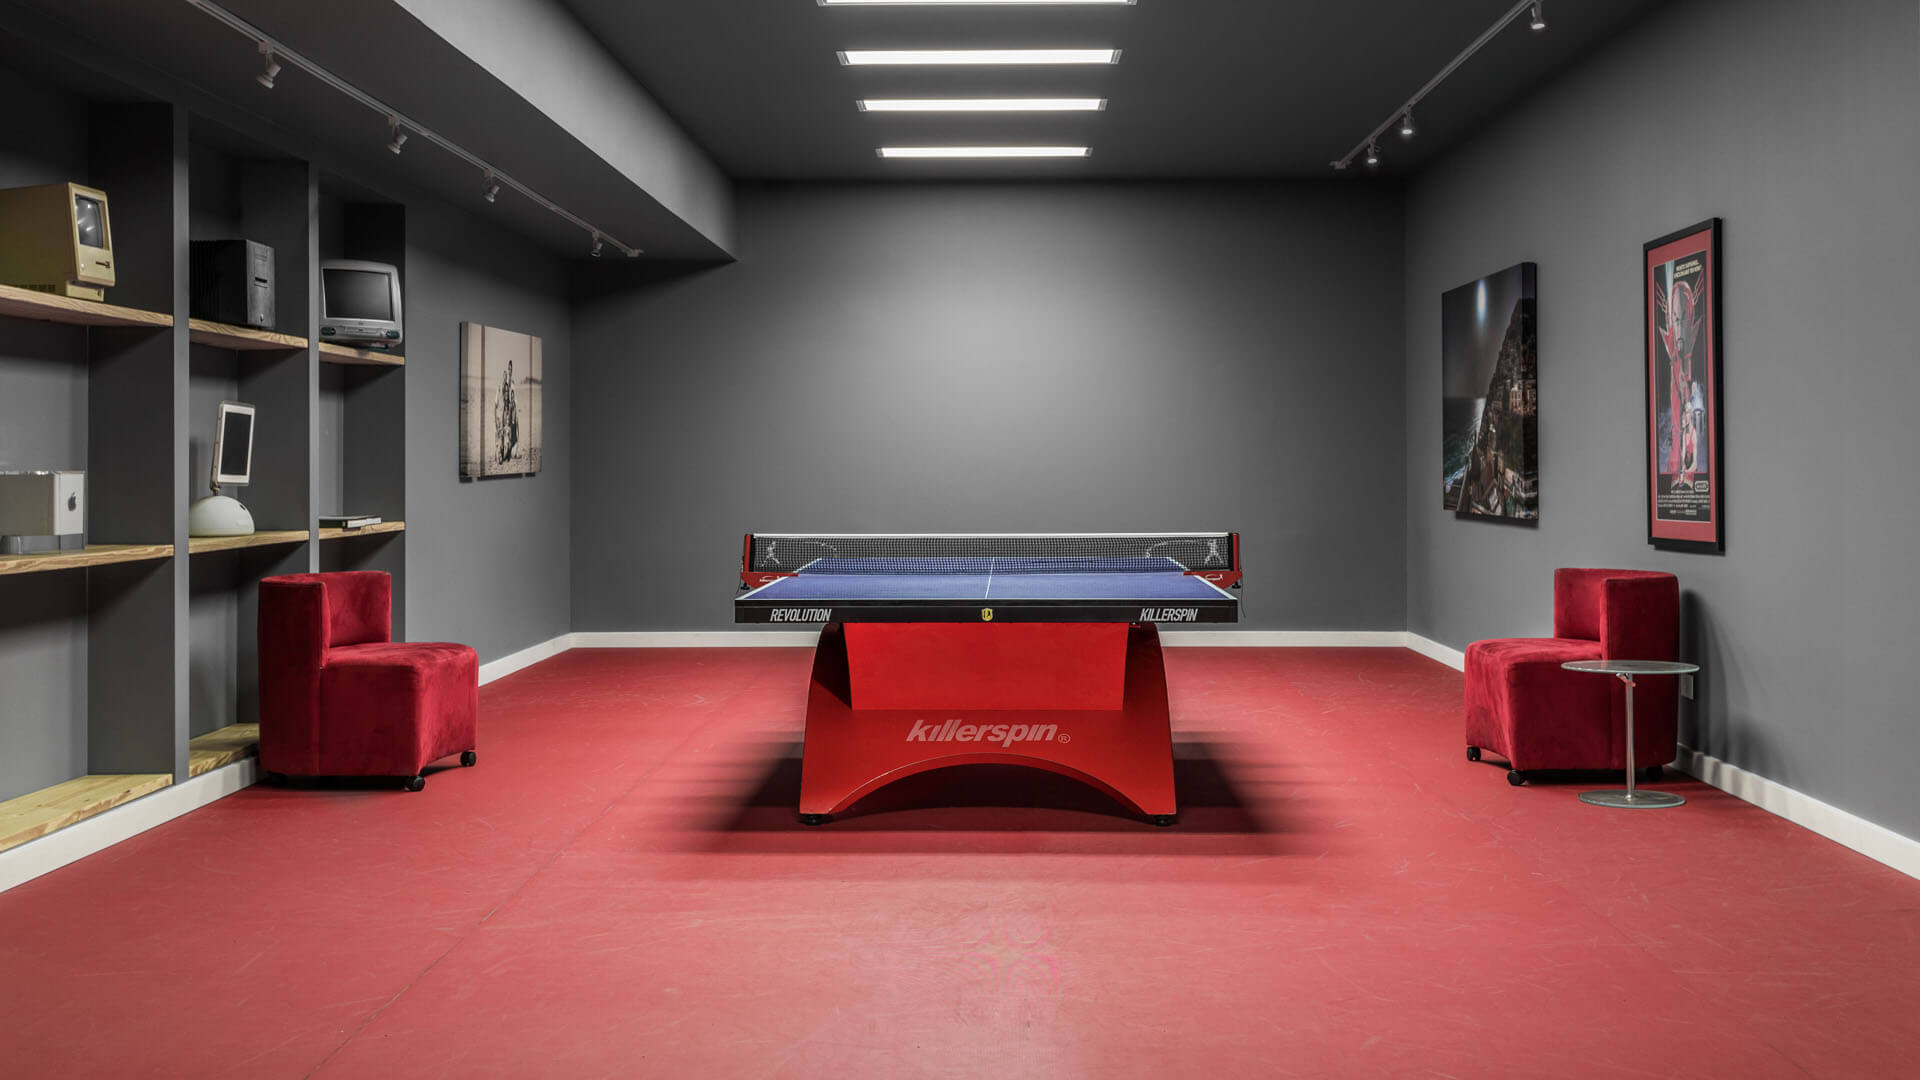 New Modern House 1 - Table Tennis Room - Christopher Short, Architect, Indianapolis, HAUS Architecture